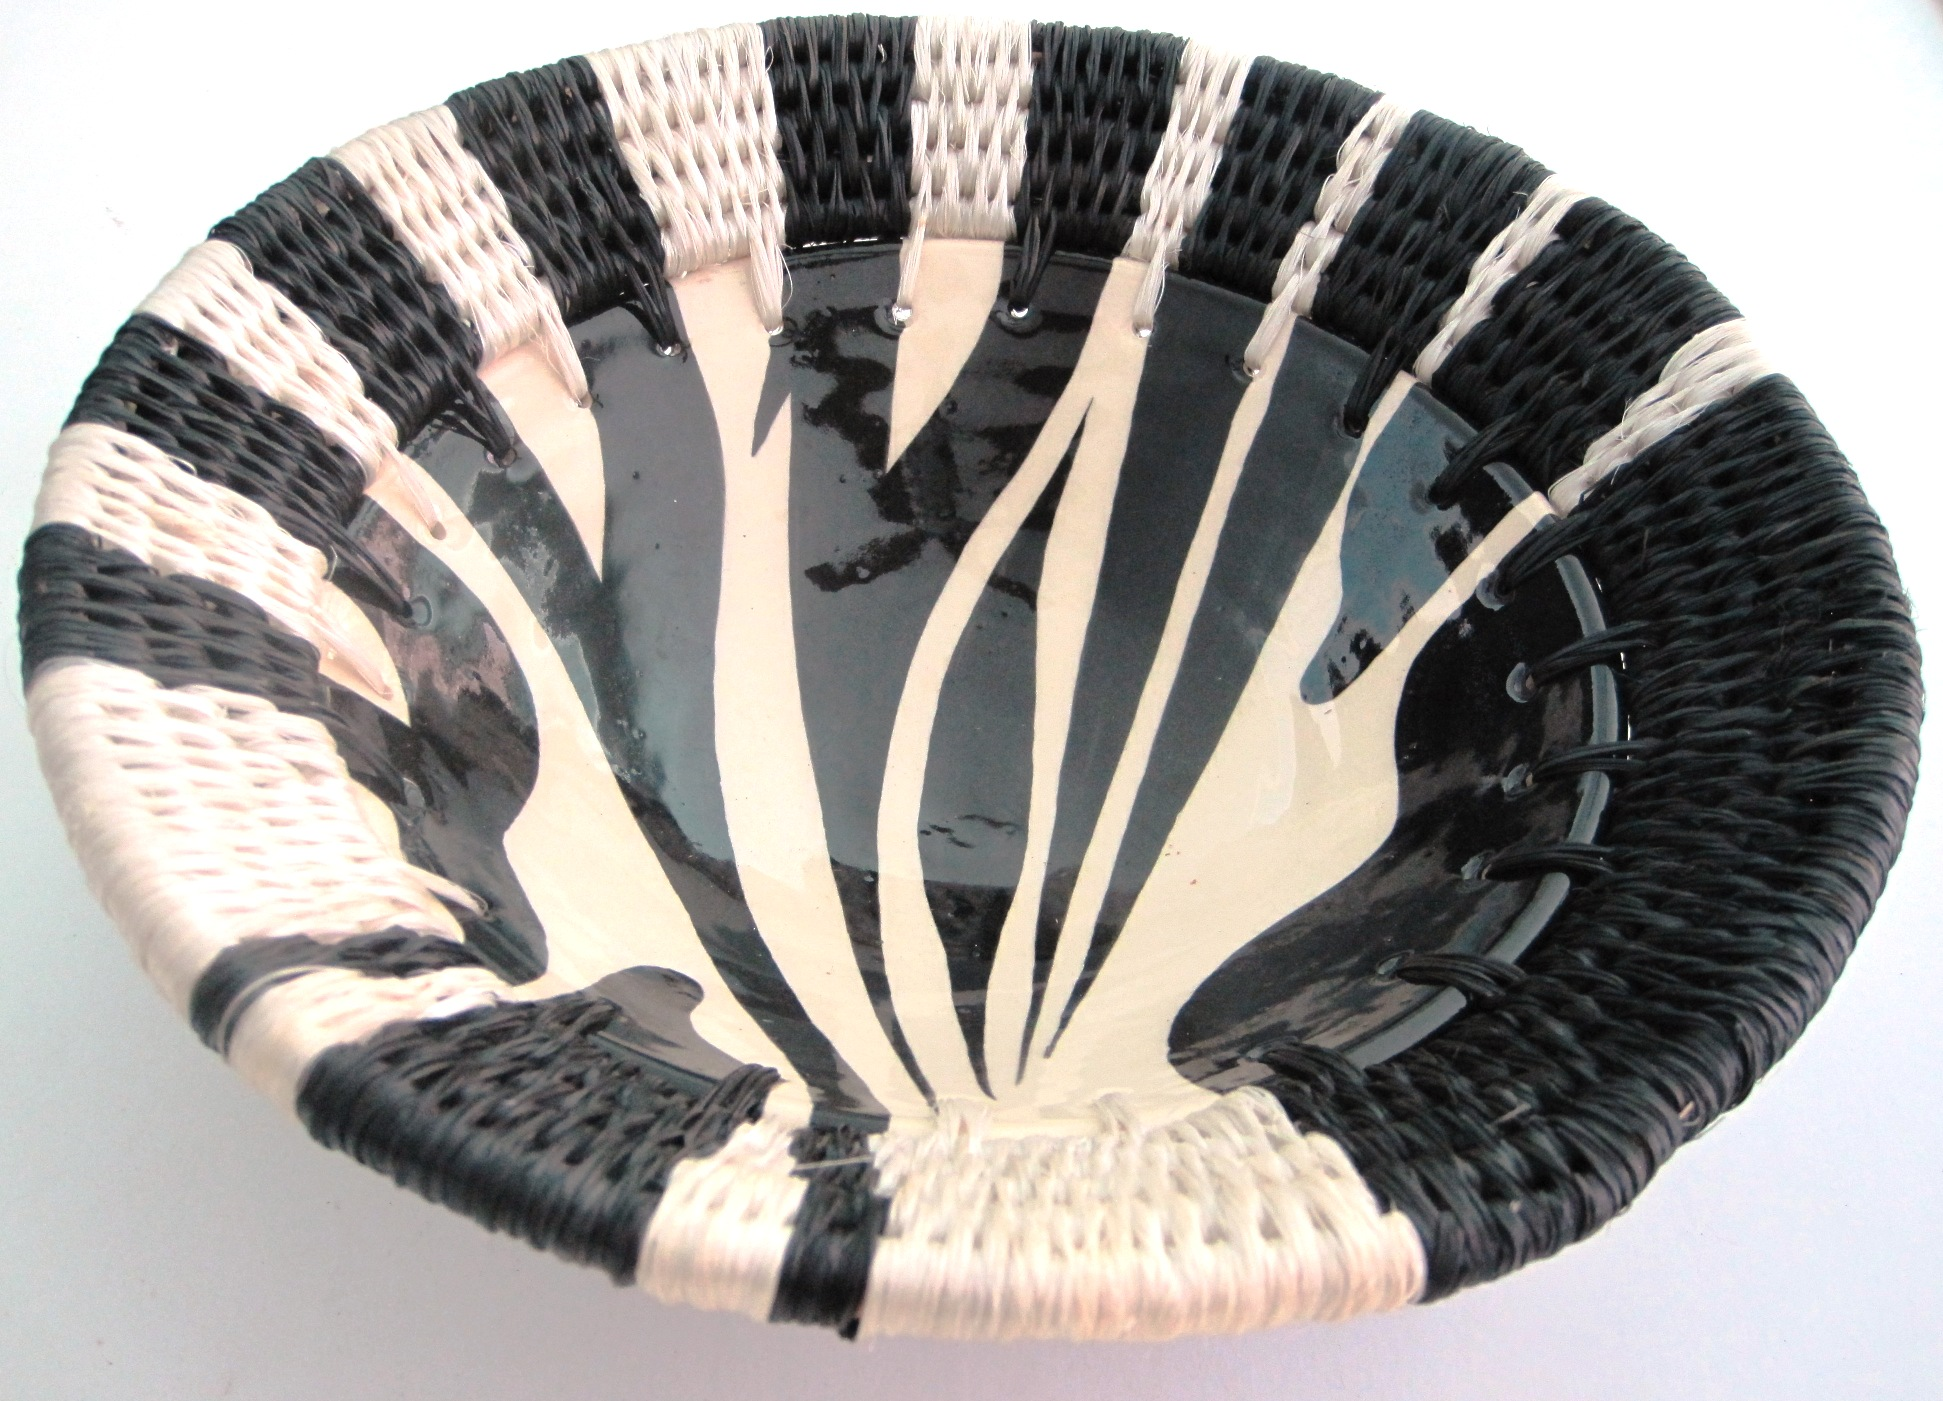 Ceramics from Swaziland